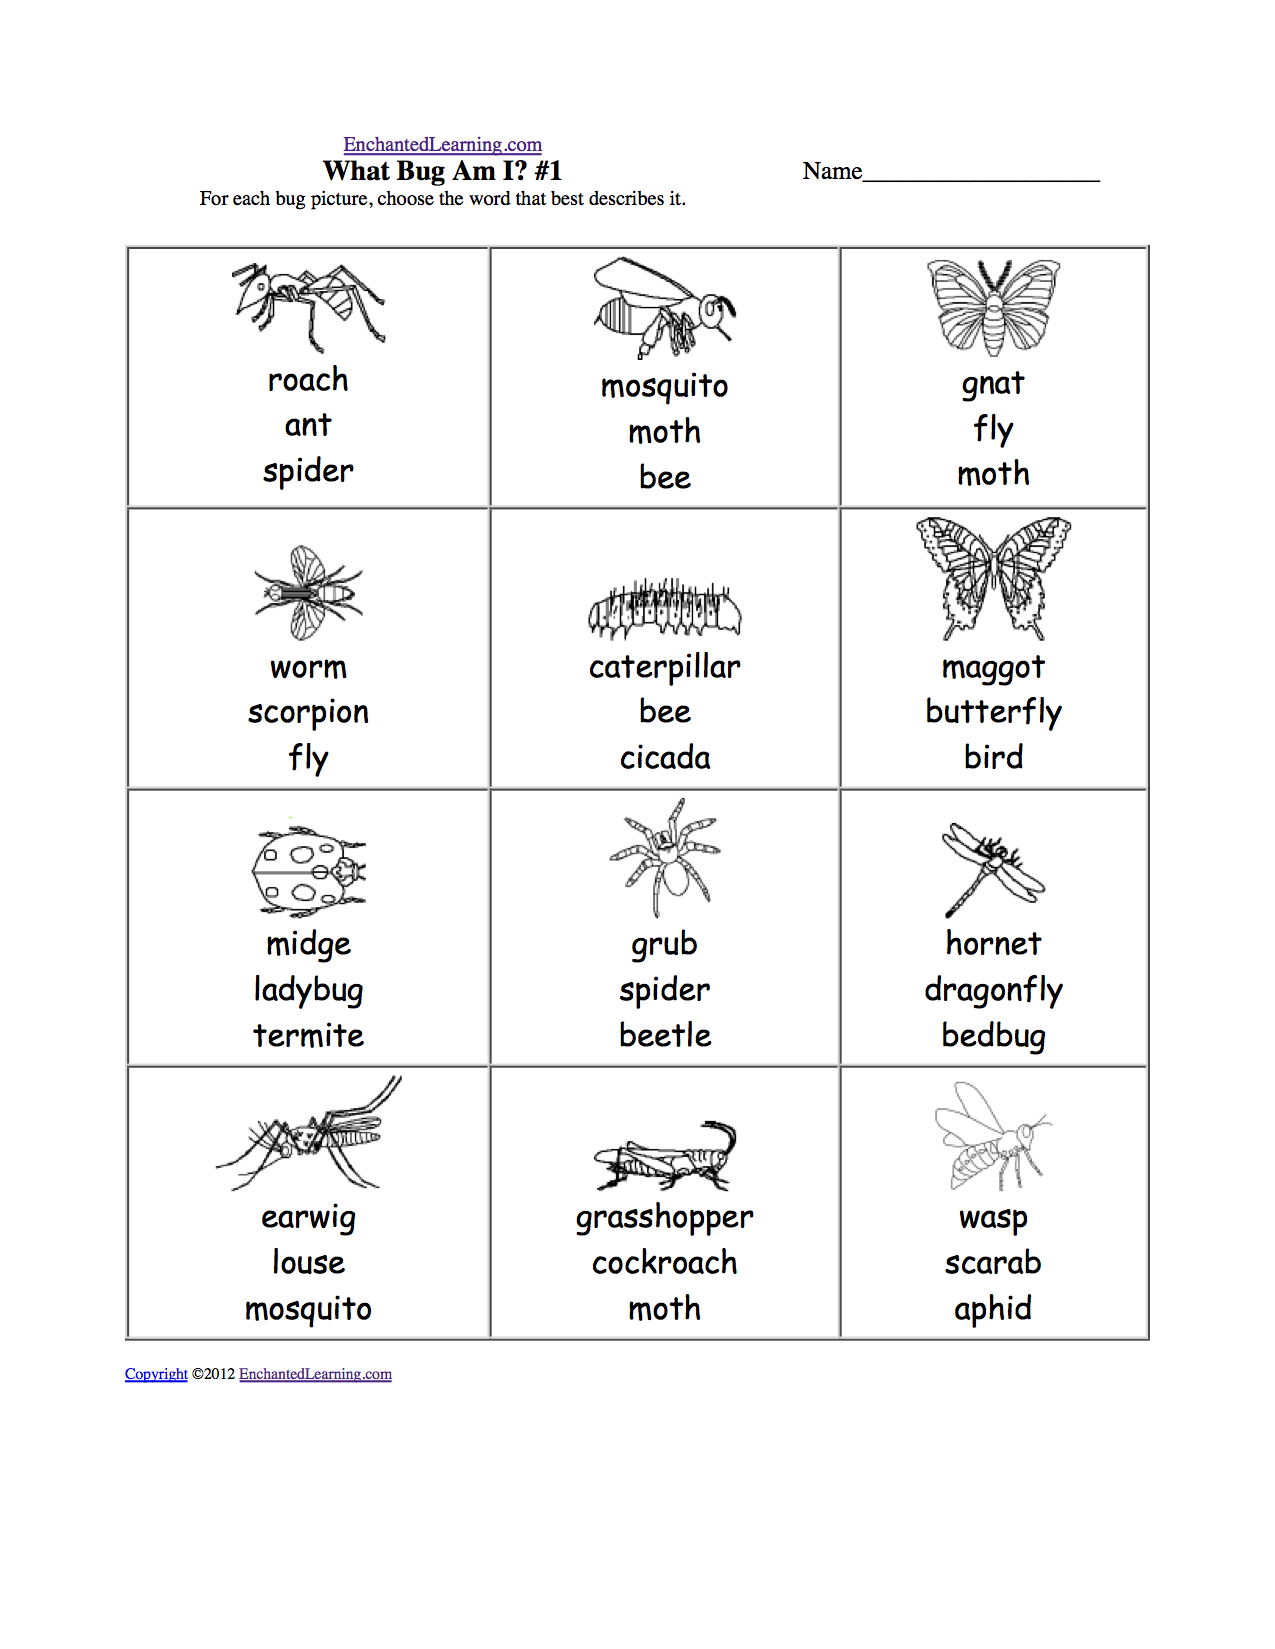 Aldiablosus  Inspiring What Am I Worksheet Printouts  Enchantedlearningcom With Magnificent Hyphenated Words Worksheet Besides Estimating Math Worksheets Furthermore Algebra Worksheets Grade  With Alluring Fraction Shading Worksheets Also Decimal Places Worksheets In Addition Needs Of Animals Worksheet And Adding Numbers Worksheet As Well As Math Worksheet Addition And Subtraction Additionally Free Prime Factorization Worksheets From Enchantedlearningcom With Aldiablosus  Magnificent What Am I Worksheet Printouts  Enchantedlearningcom With Alluring Hyphenated Words Worksheet Besides Estimating Math Worksheets Furthermore Algebra Worksheets Grade  And Inspiring Fraction Shading Worksheets Also Decimal Places Worksheets In Addition Needs Of Animals Worksheet From Enchantedlearningcom